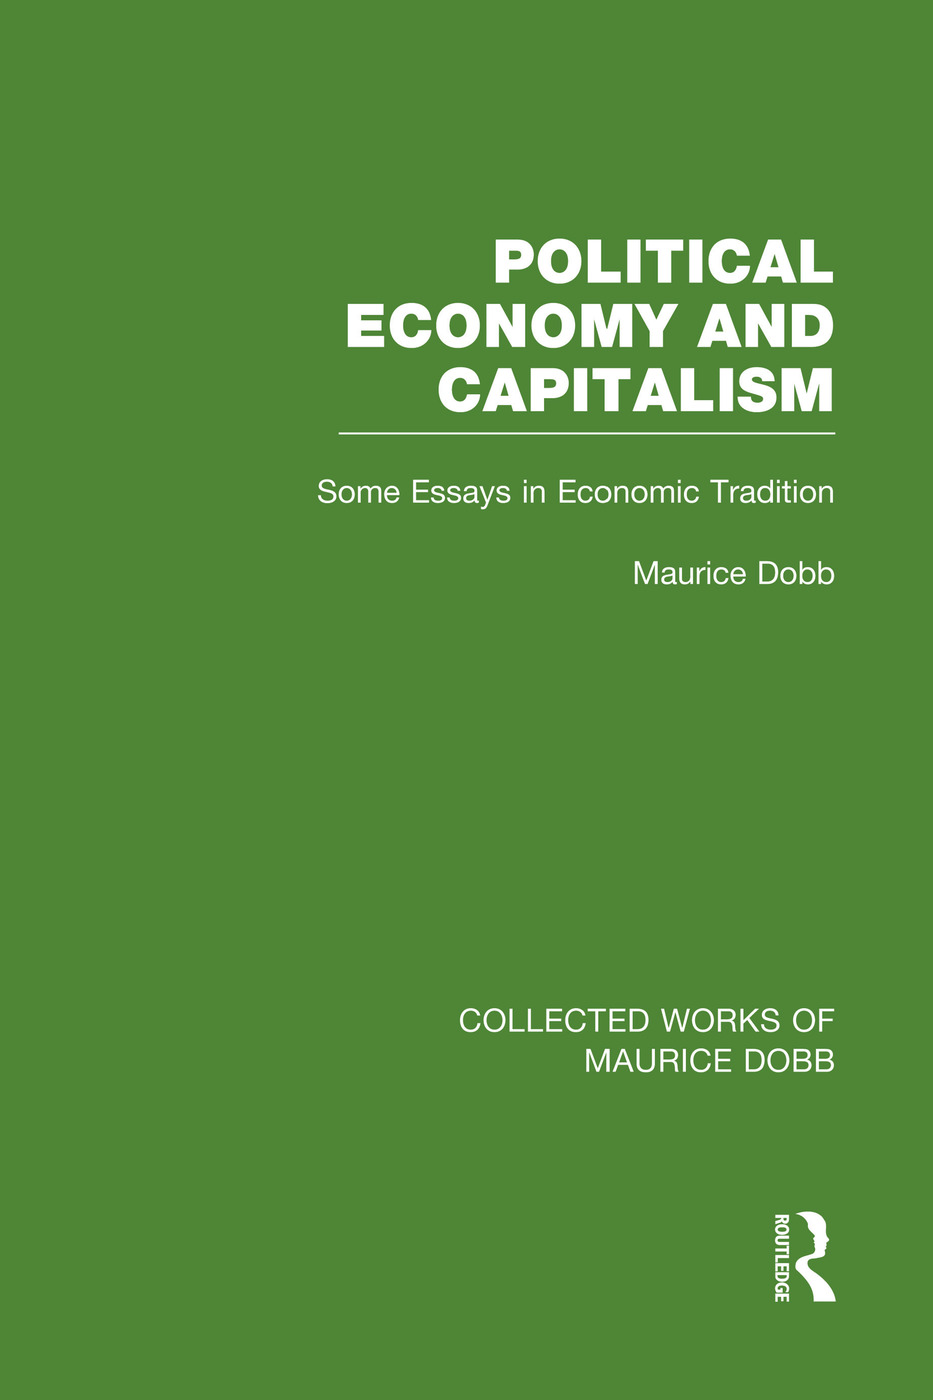 Political Economy and Capitalism